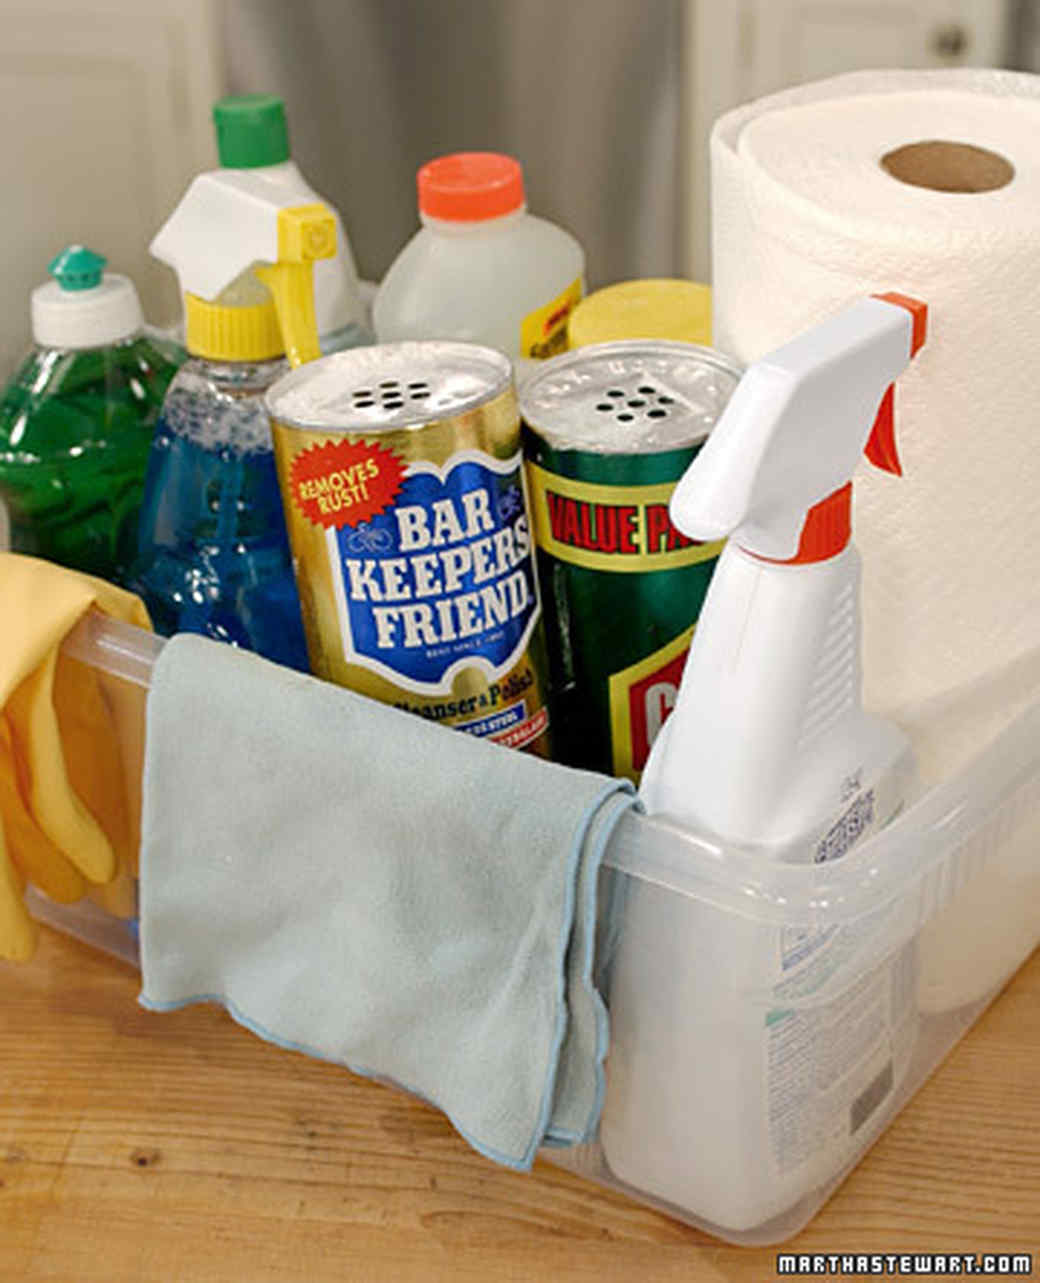 Deep Clean Kitchen: Spring-Cleaning Basics